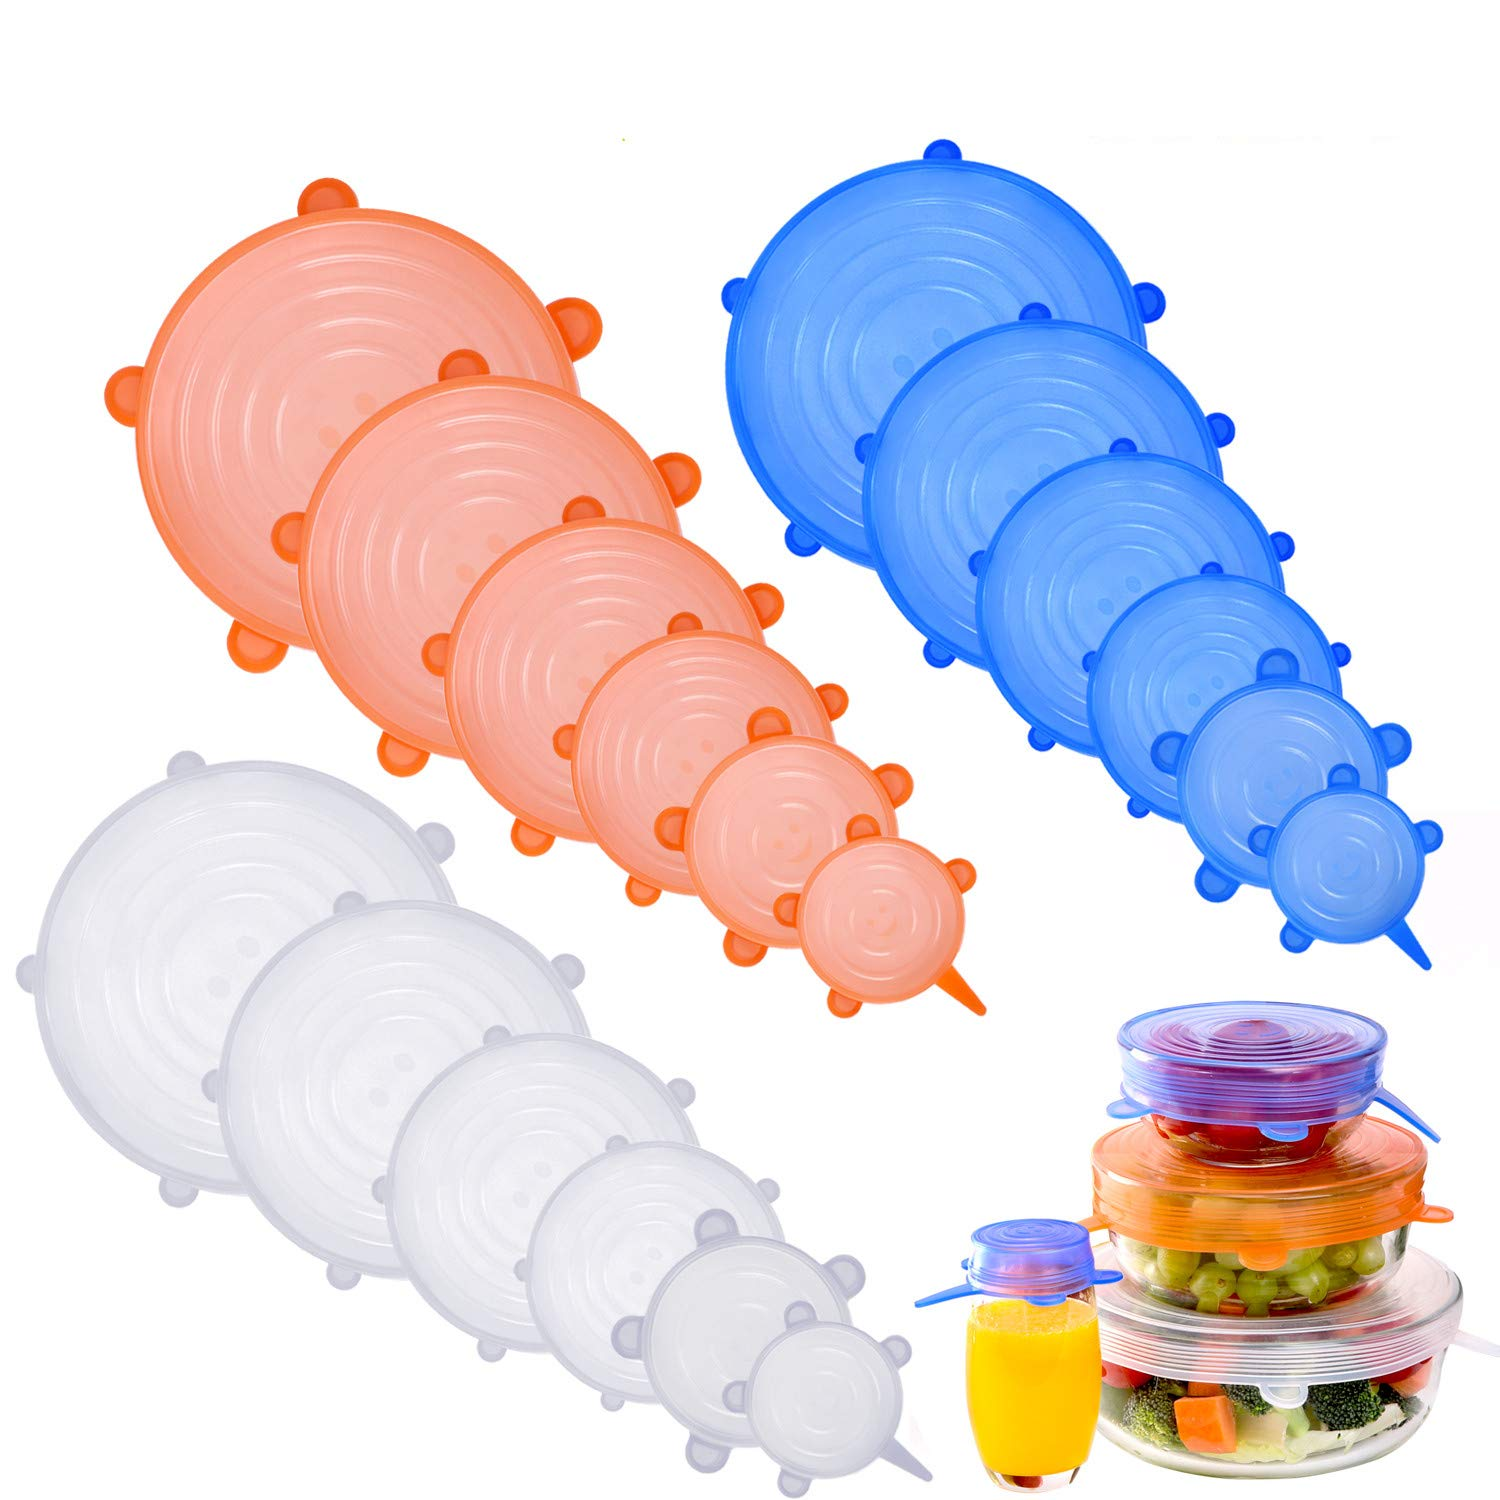 NEWBEA Silicone Stretch Lids,18-Pack of Various Sizes to Fit Various Sizes and Shapes of Containers,Reusable, Durable and Expandable Food Covers As Seen On TV,Keeping Food Fresh